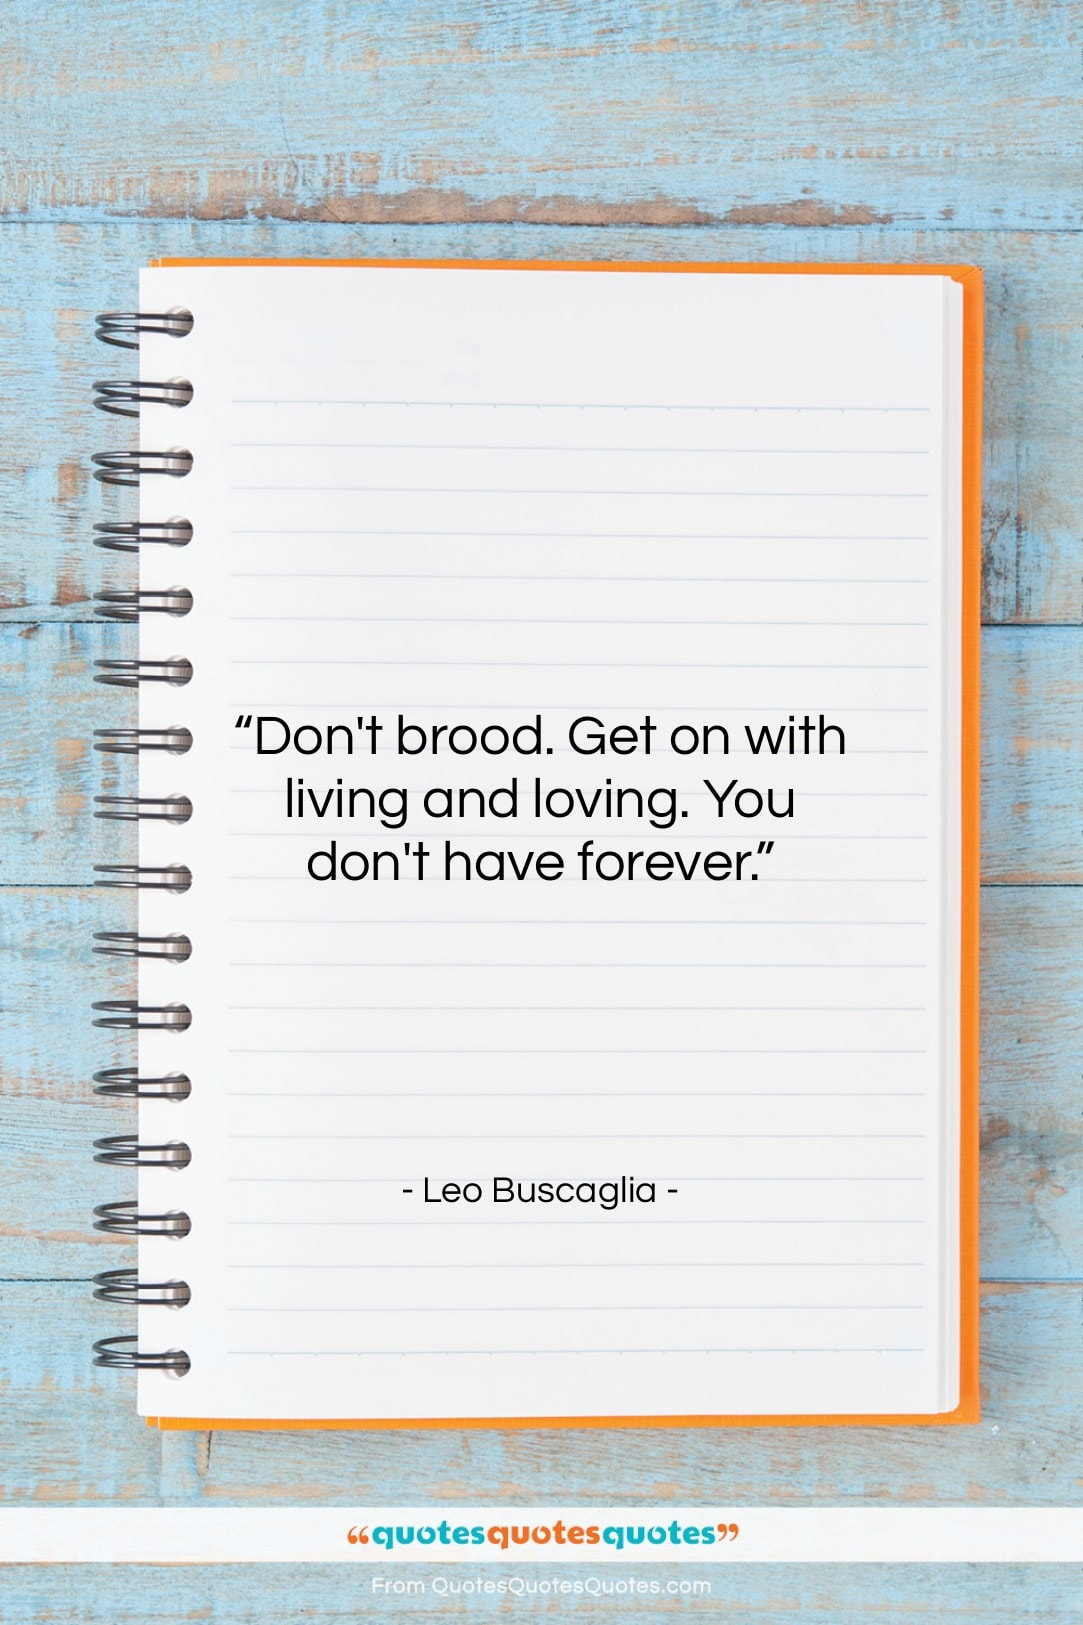 """Leo Buscaglia quote: """"Don't brood. Get on with living and…""""- at QuotesQuotesQuotes.com"""